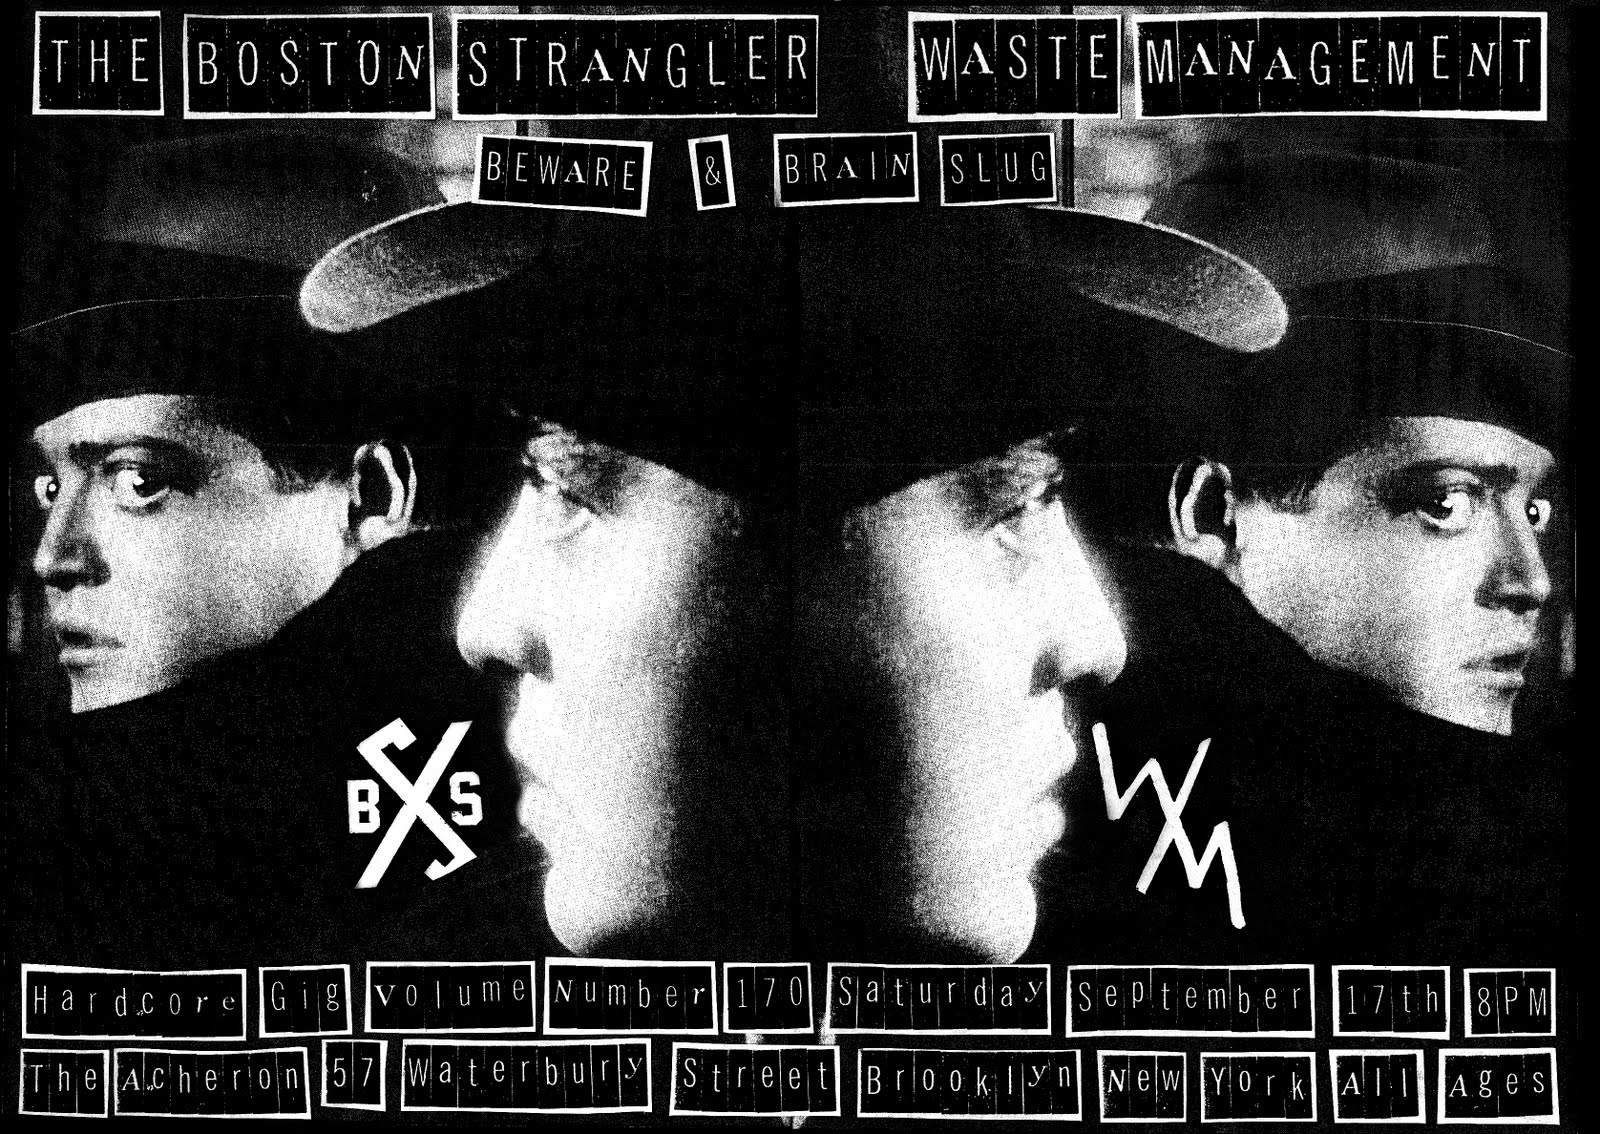 Boston Strangler-Waste Management-Beware-Brain Slug @ The Archeron Brooklyn NY 9-17-11